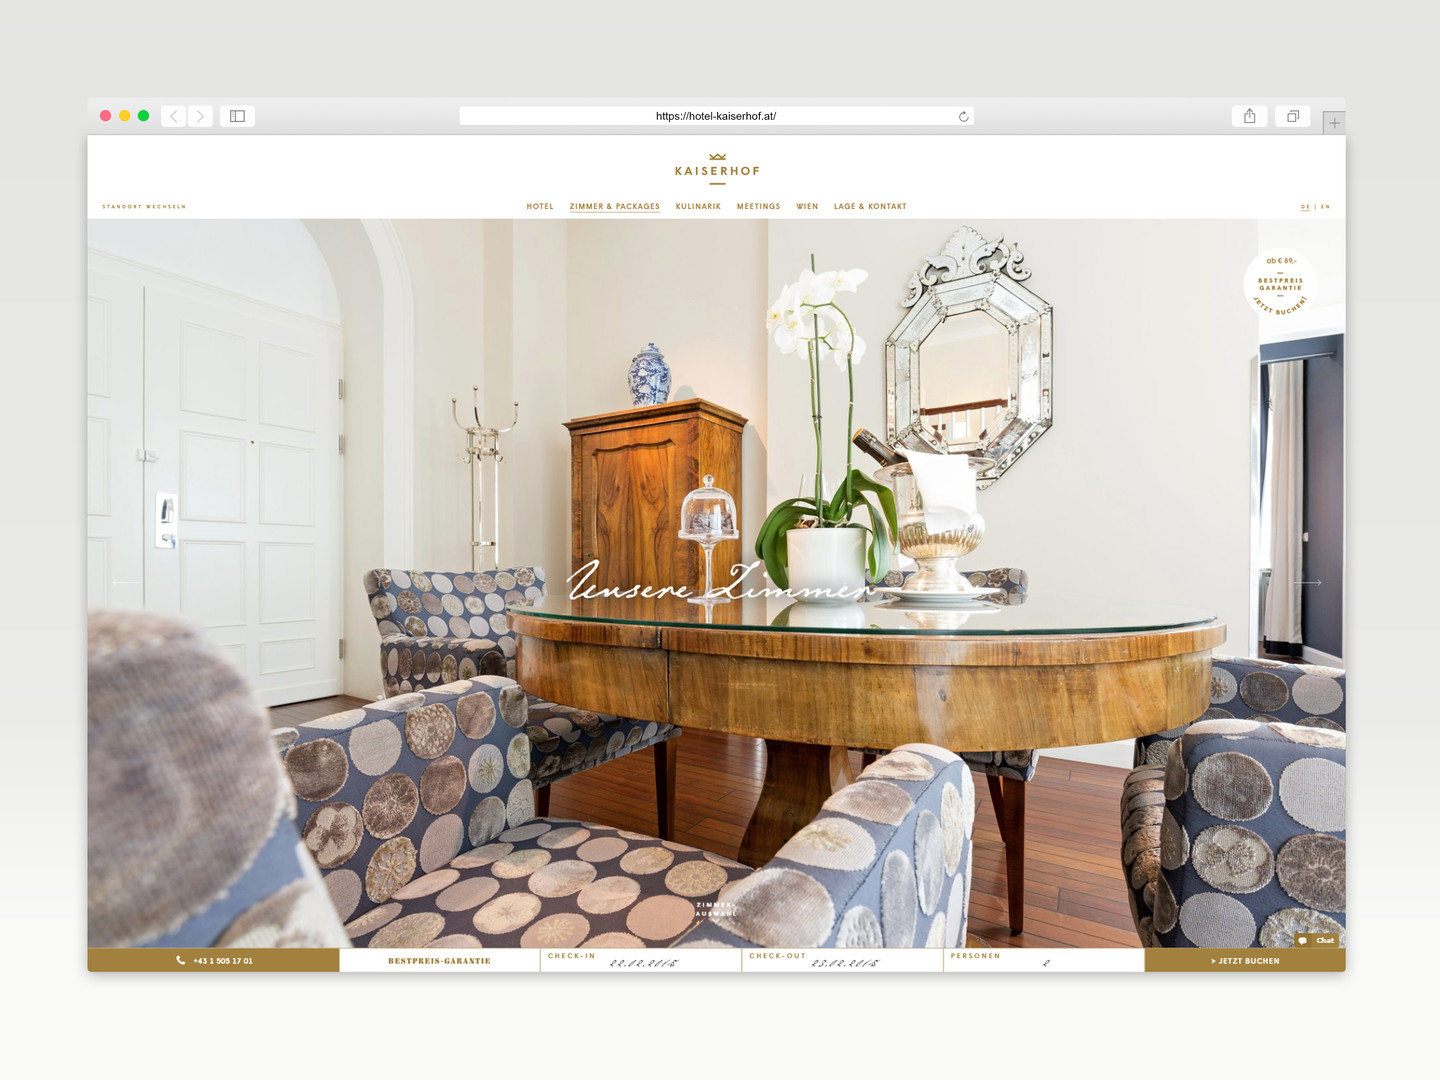 Hotel Kaiserhof Website Design